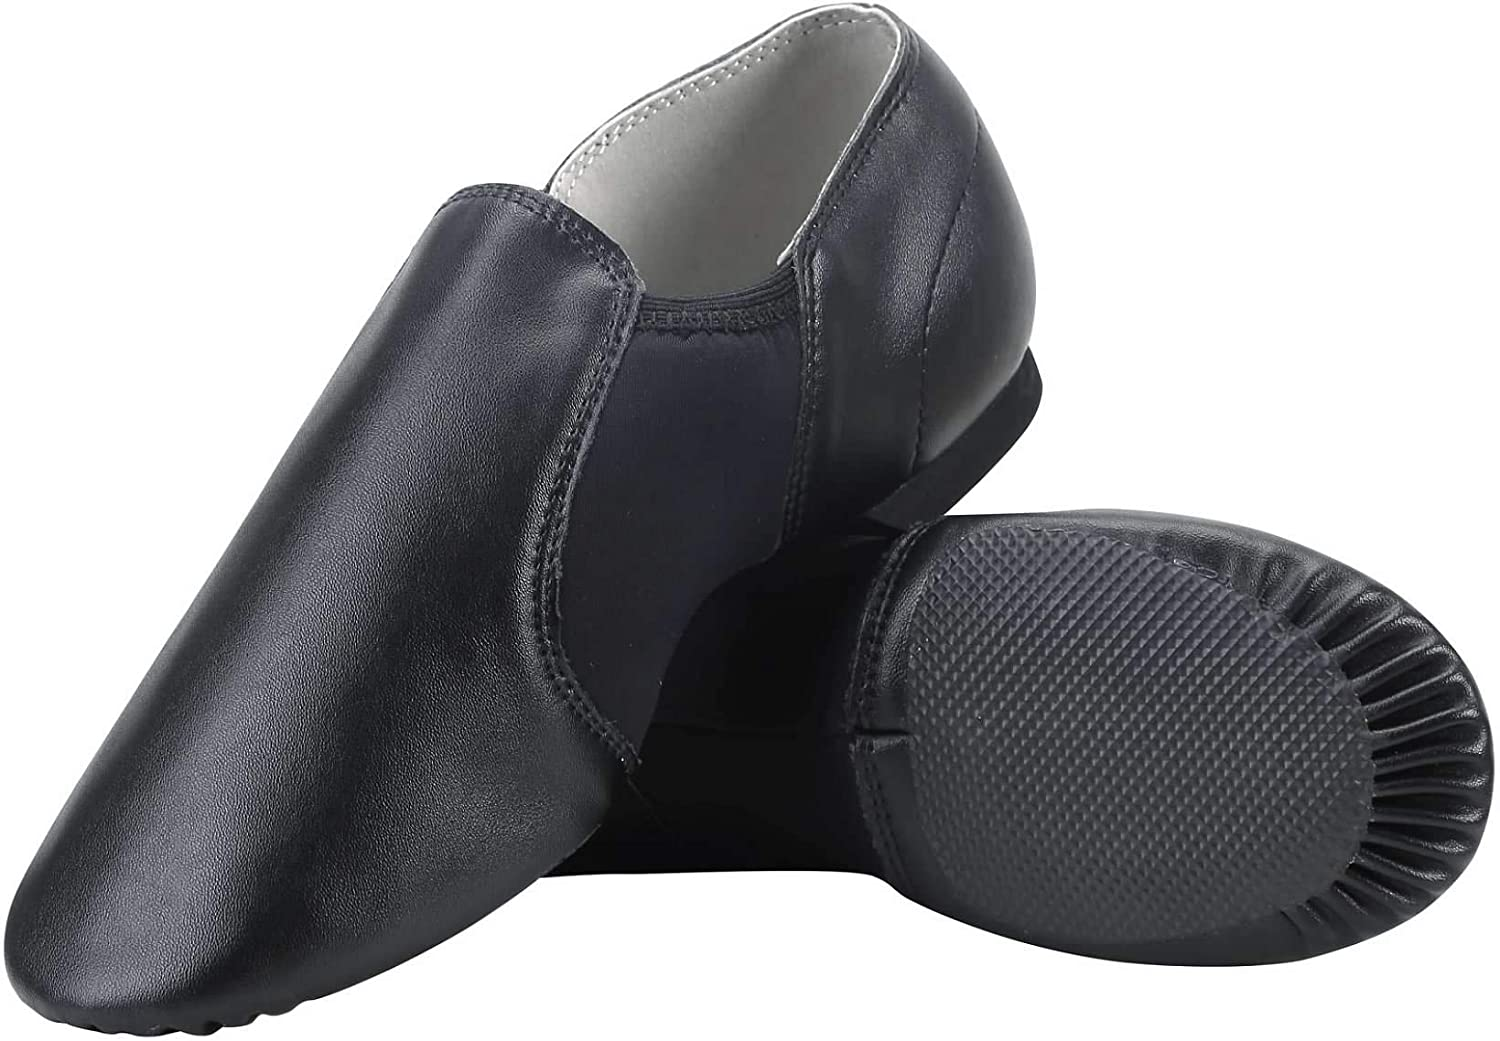 Dynadans Unisex PU Leather Upper Slip-on Jazz Shoe with Elastics for Women and Mens Dance Shoes